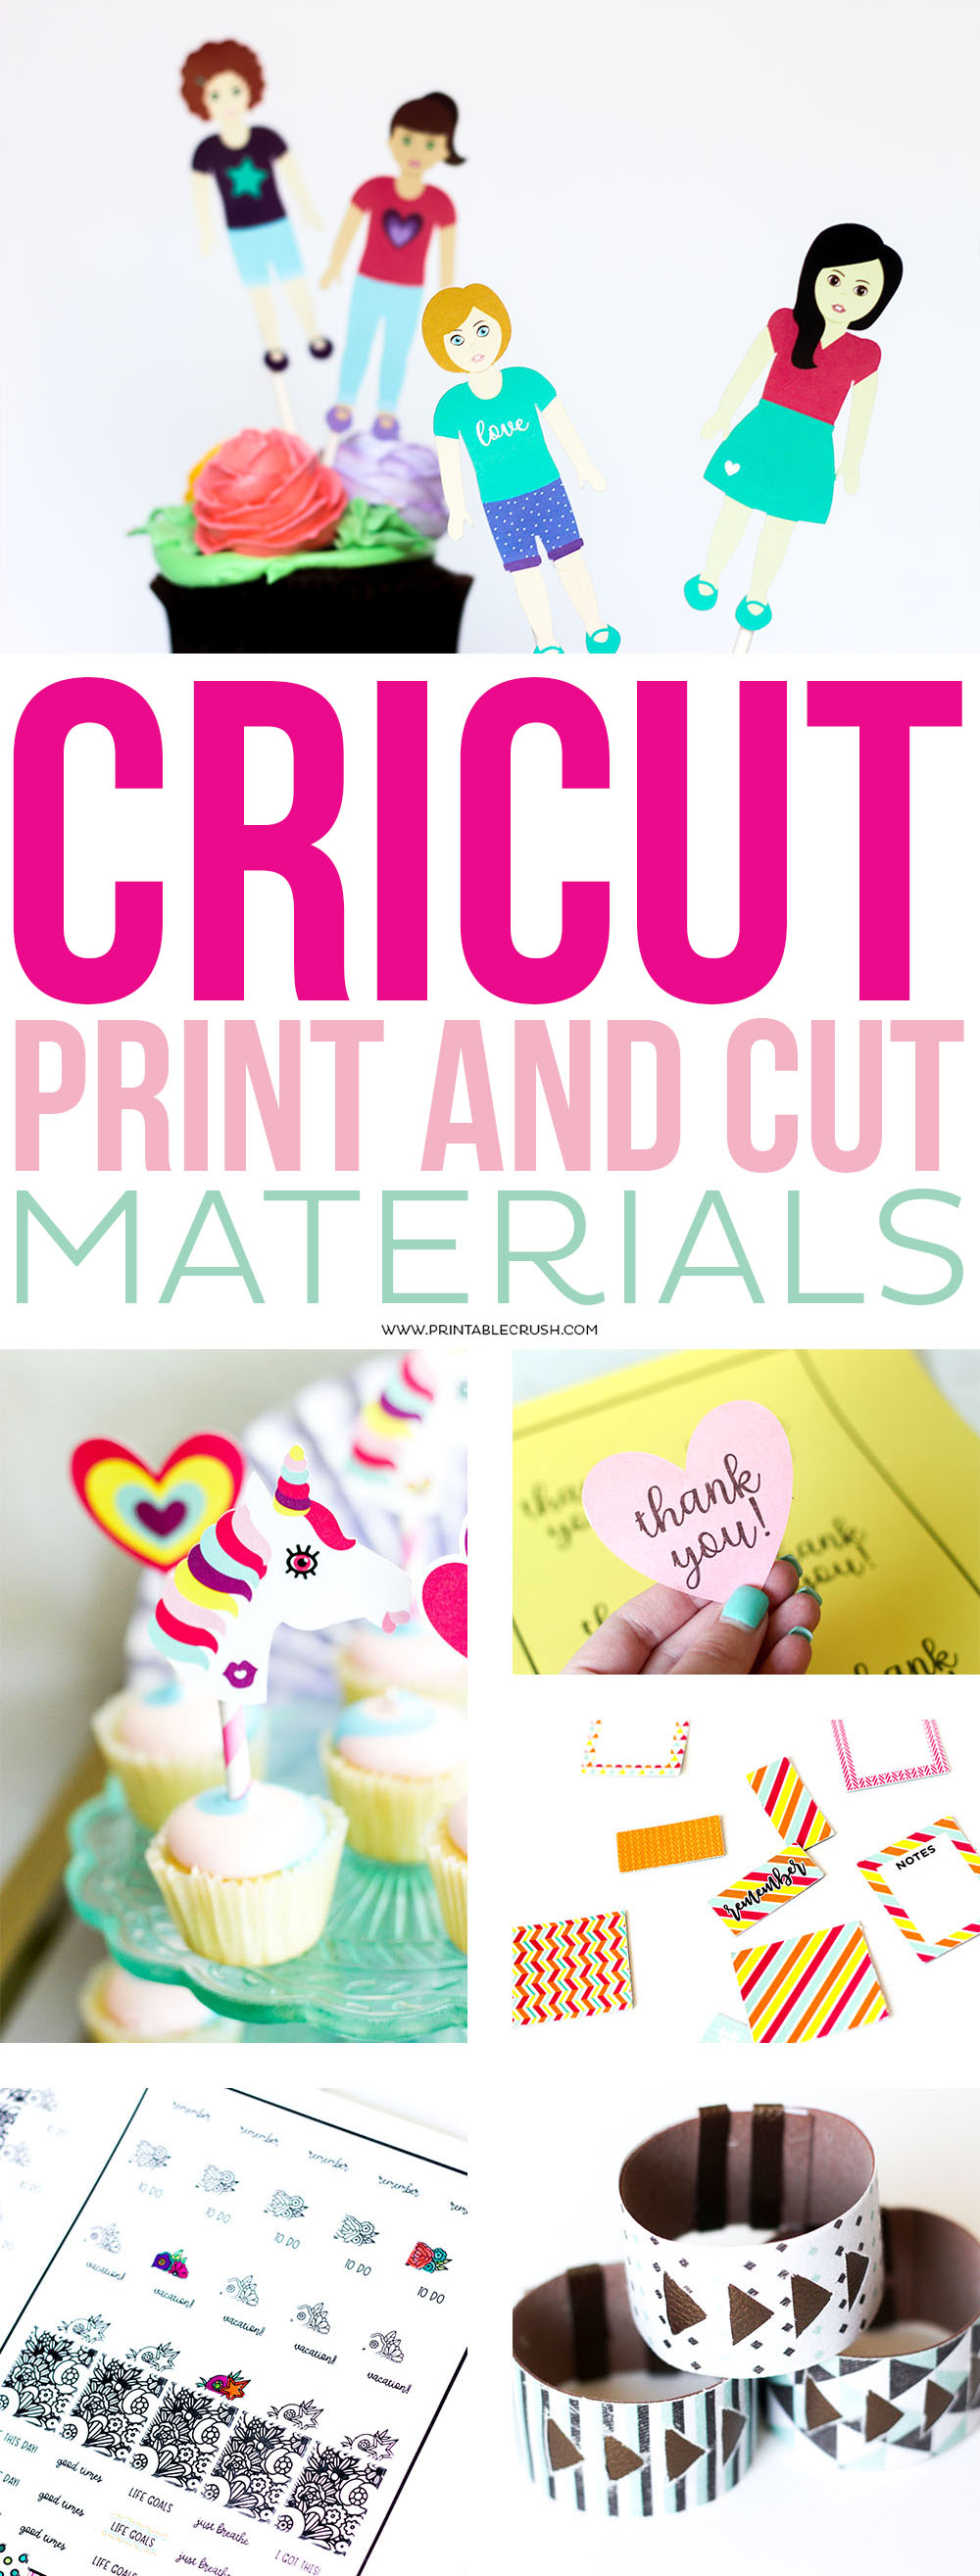 There are so many Cricut Print and Cut Materials you need to explore! This is such a great feature and will make you love your Cricut Maker more than you already do!